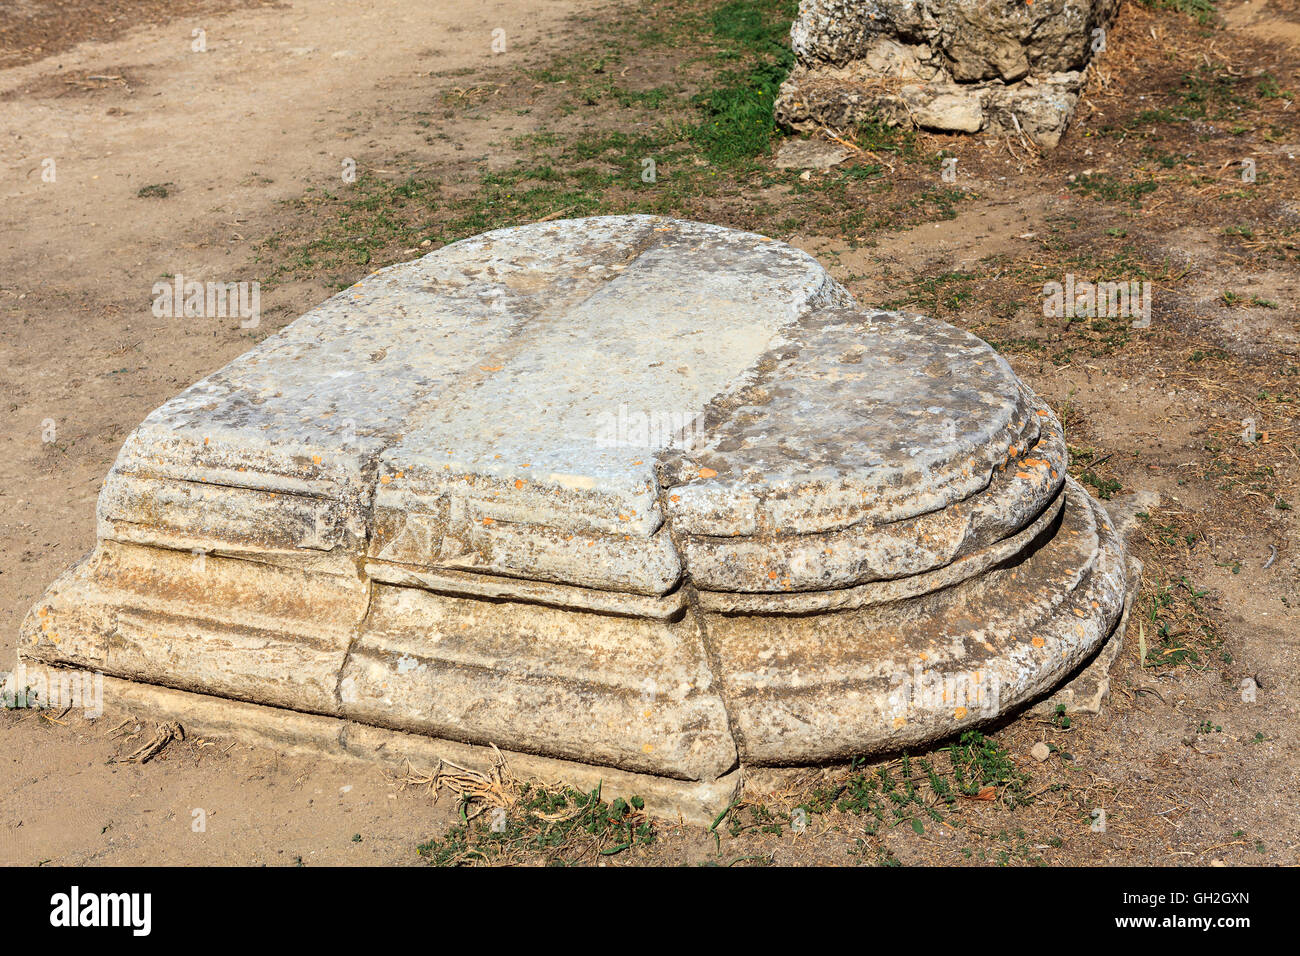 Heart shaped plinth at the archaeological site of Salamis in Famagusta, Cyprus. - Stock Image